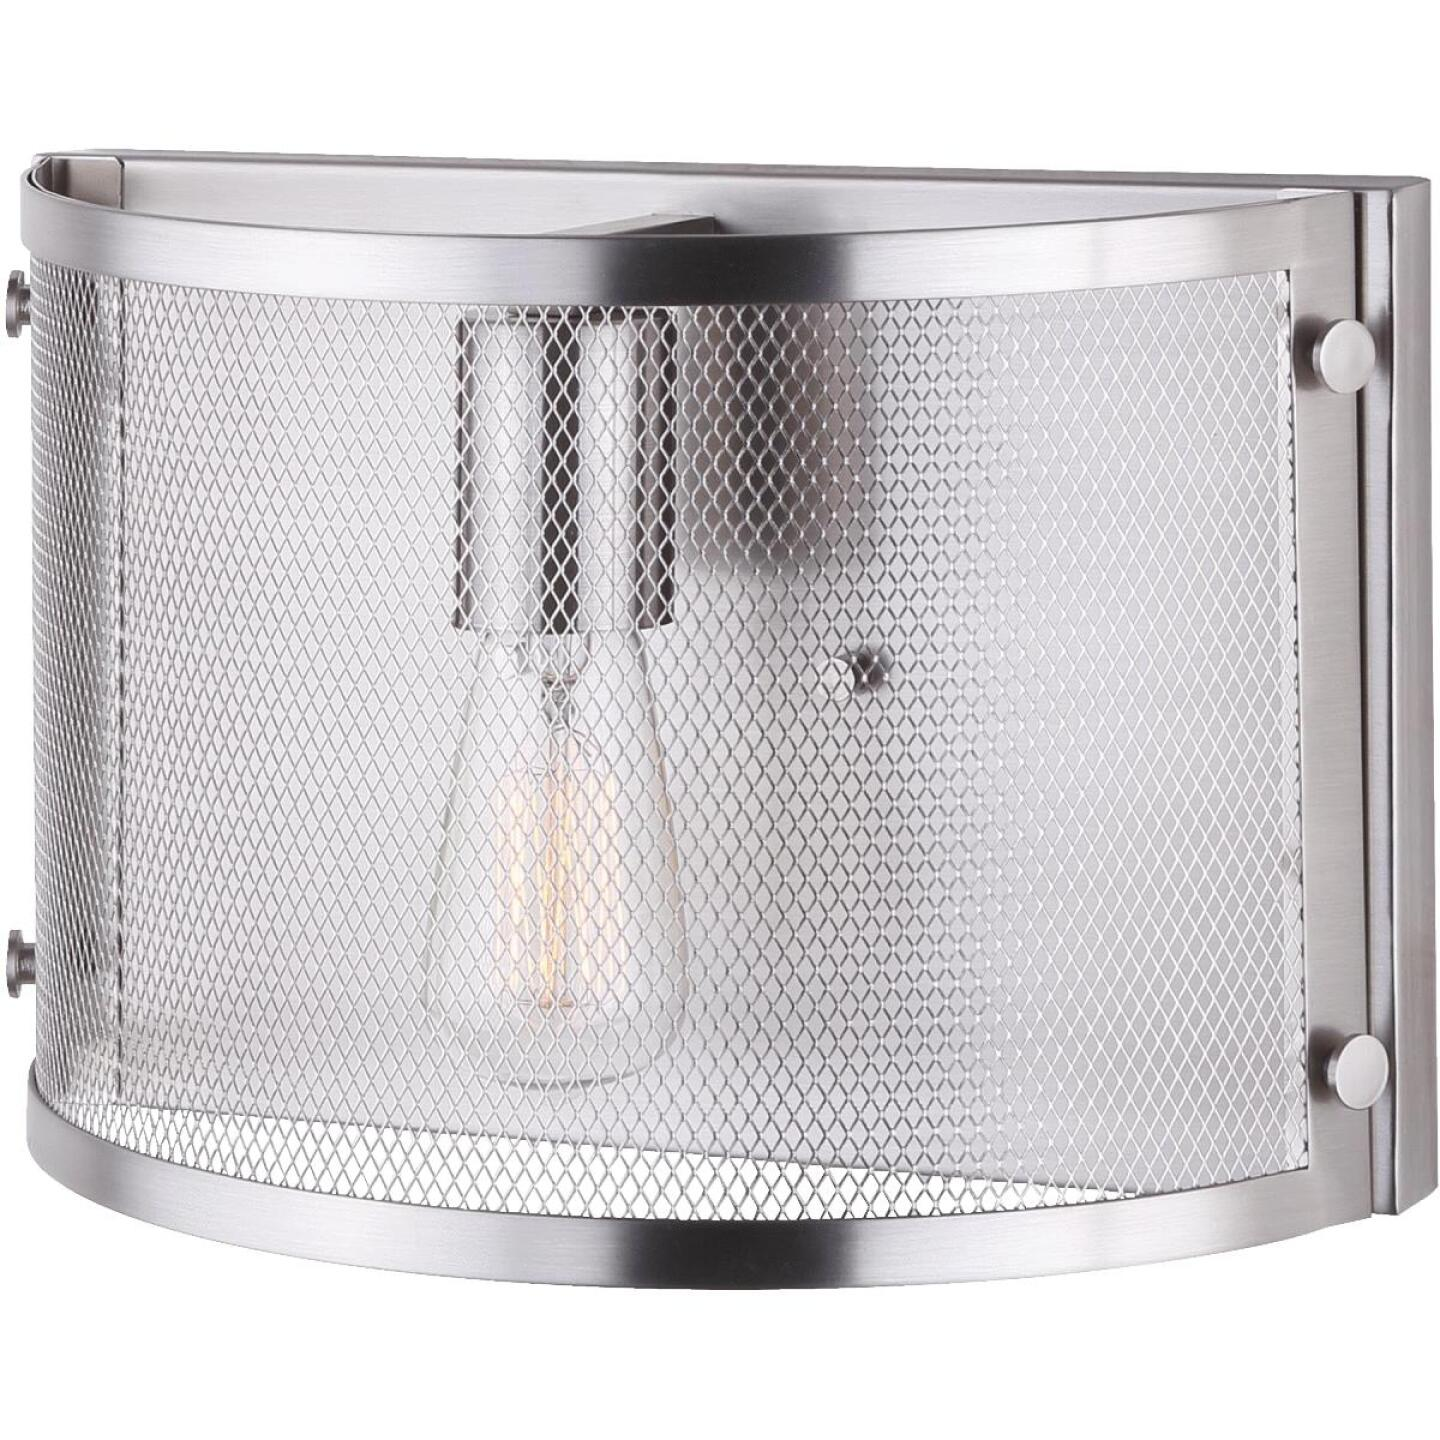 Home Impressions Beckett 1-Bulb Brushed Nickel Wall Light Fixture Image 1